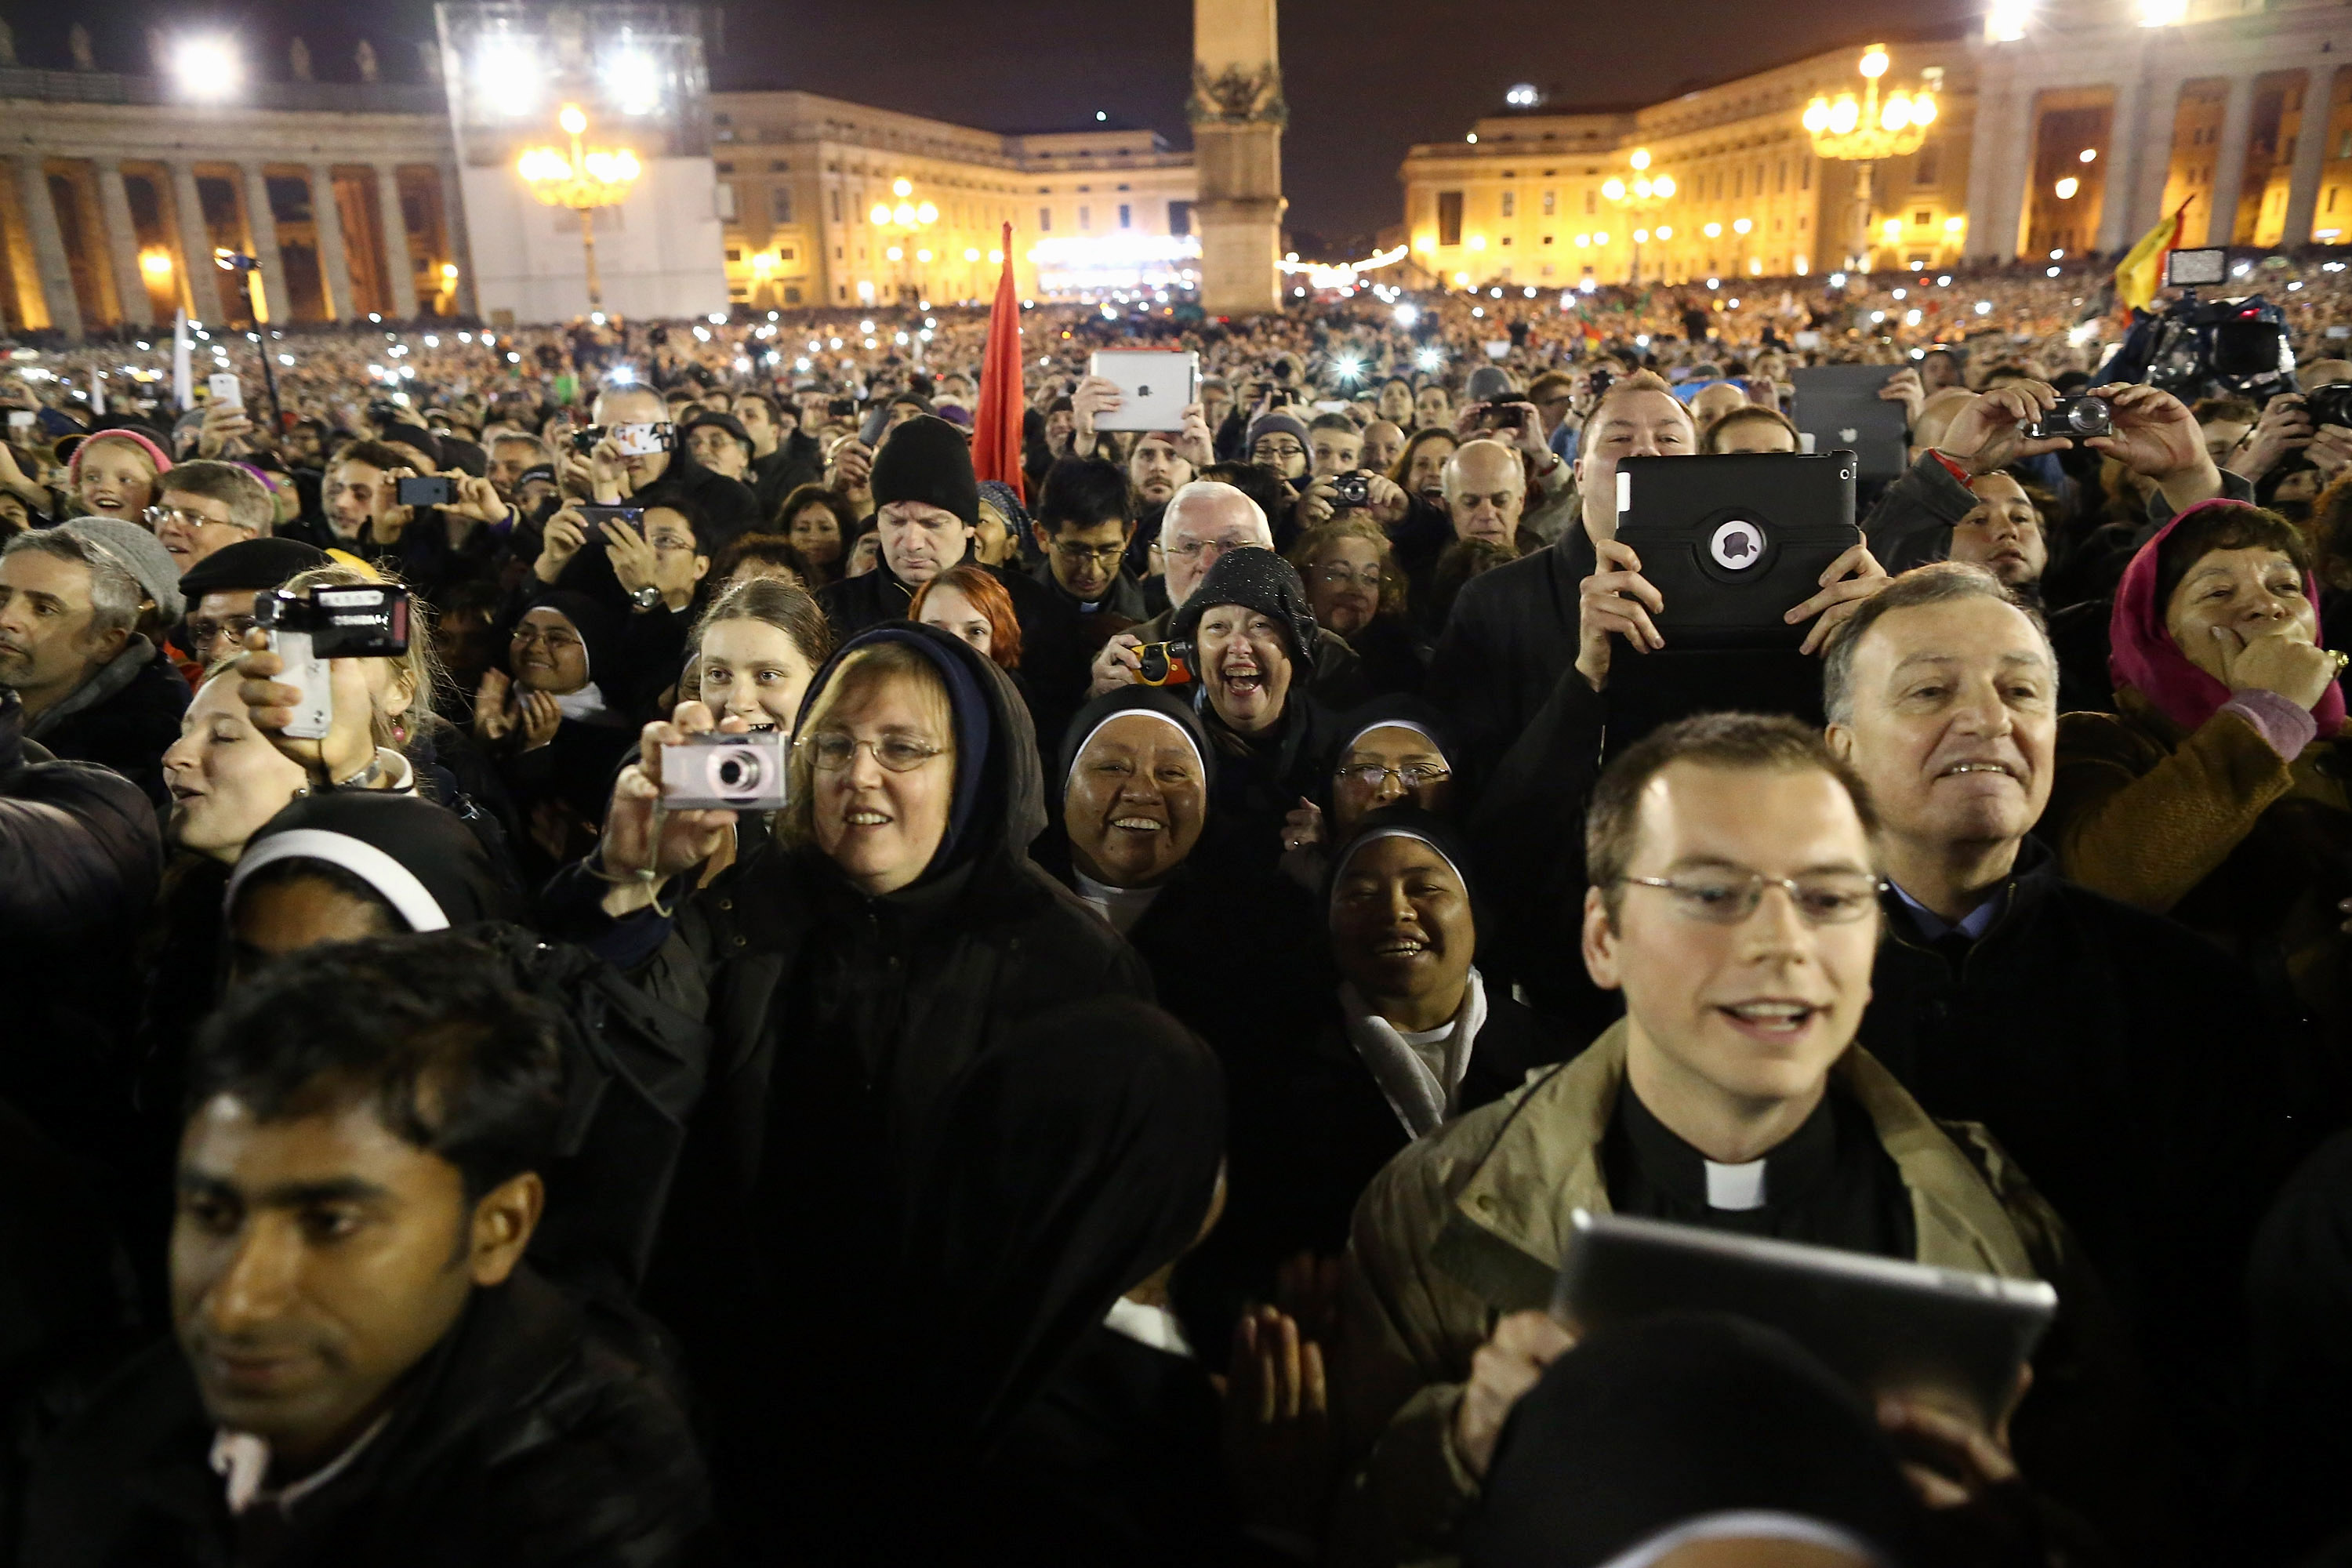 VATICAN CITY, VATICAN - MARCH 13:  People react as newly elected Pope Francis I appears on the central balcony of St Peter's Basilica on March 13, 2013.